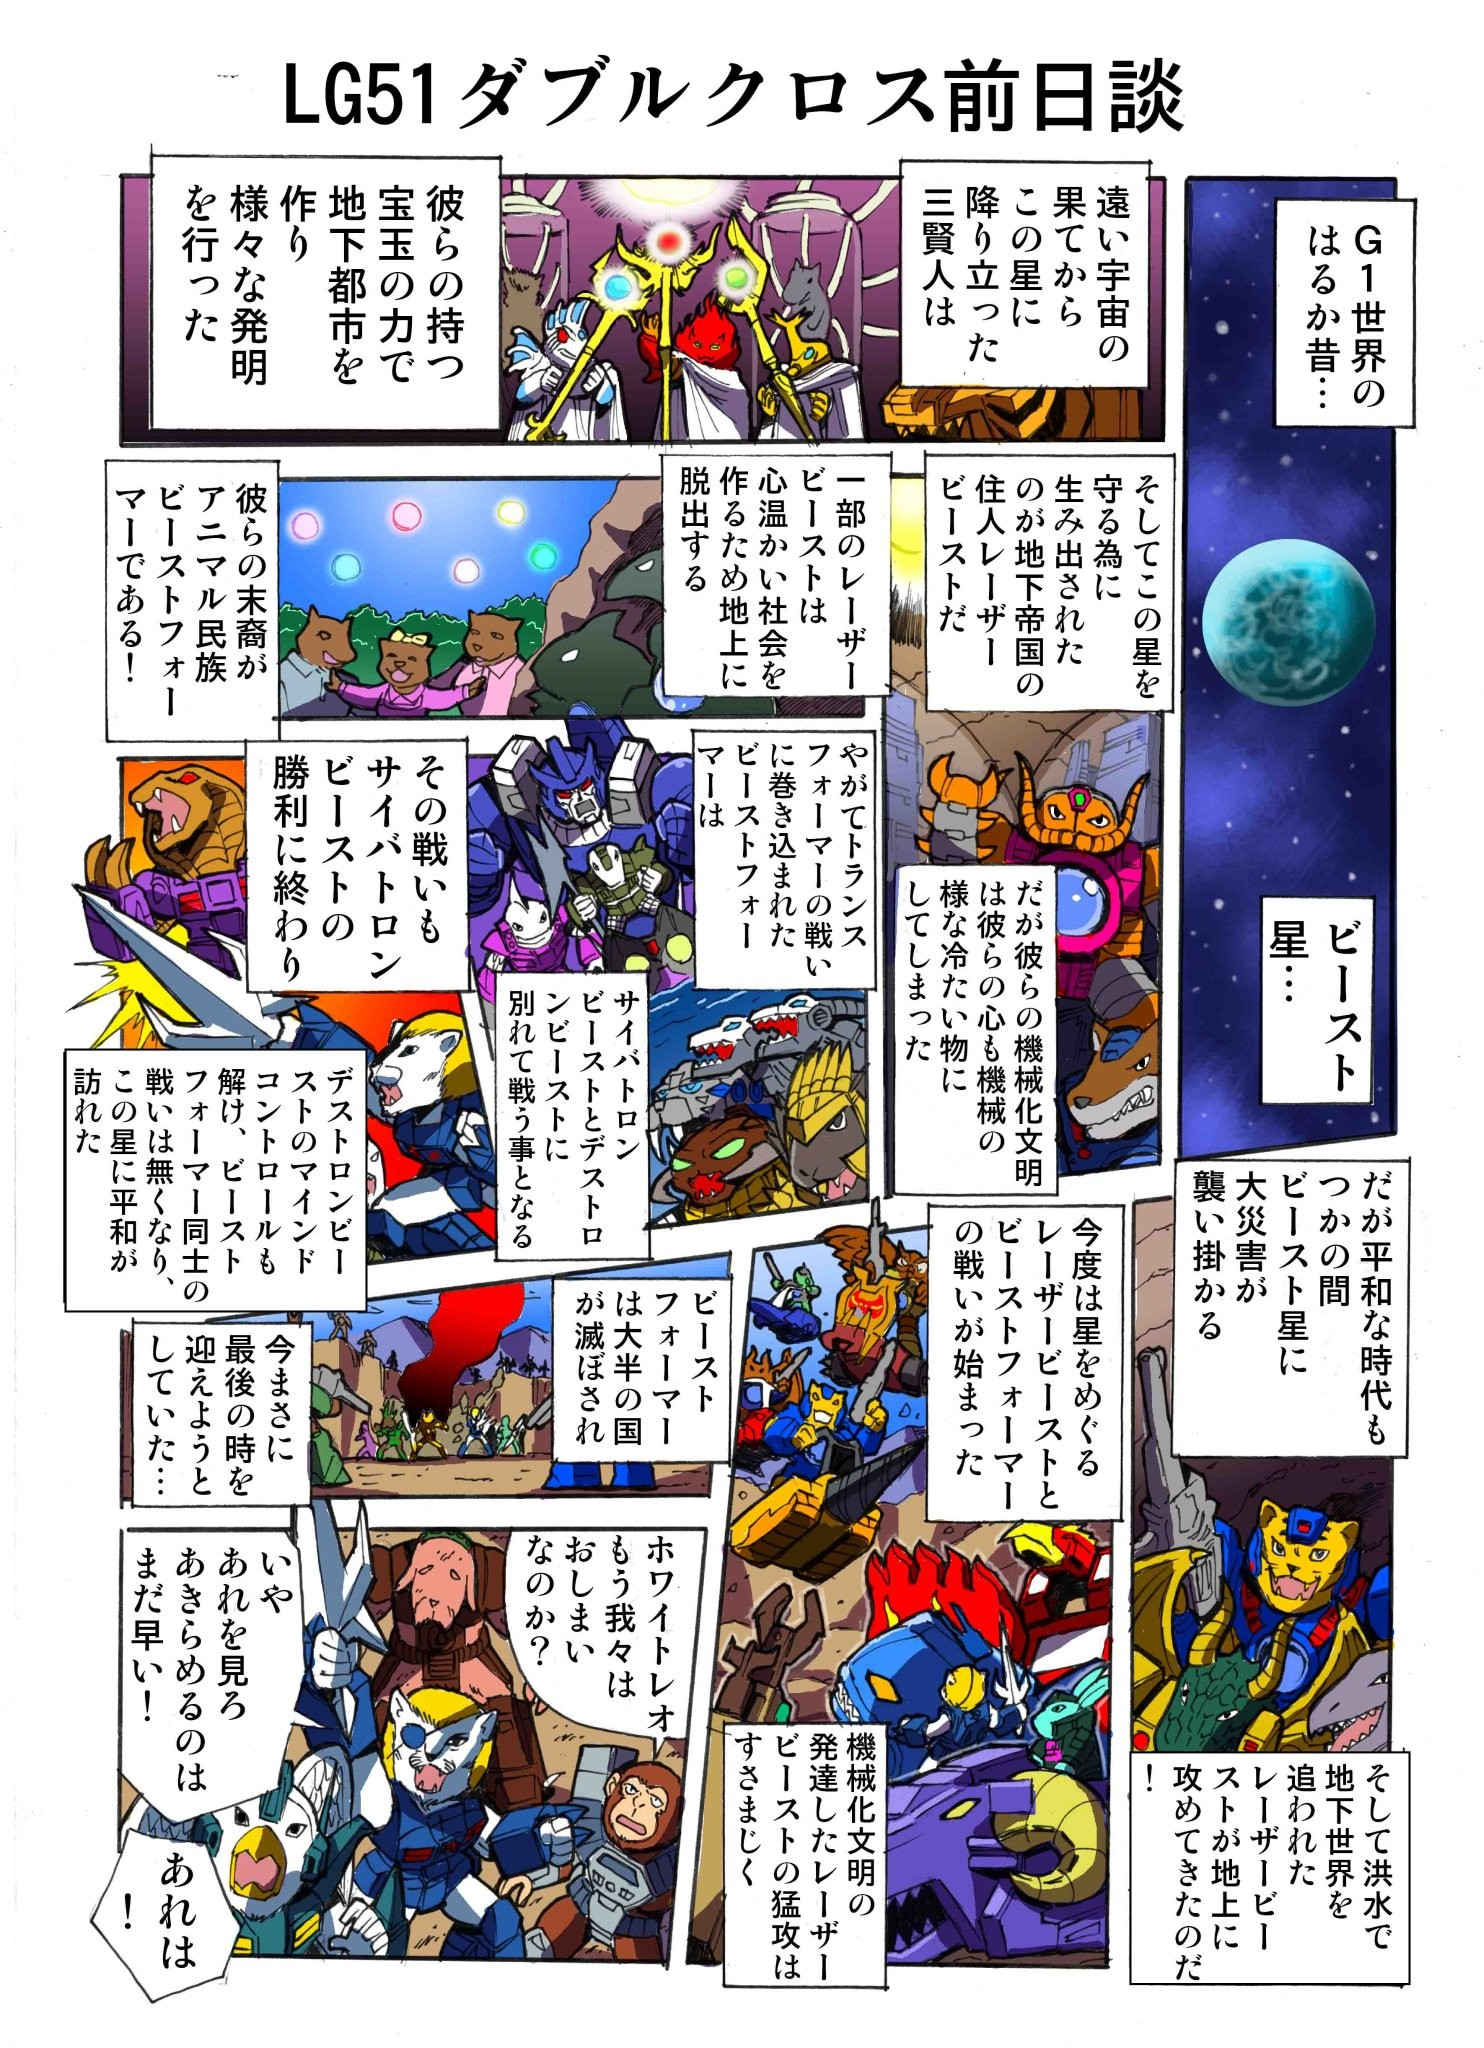 Transformers News: New Takara Tomy Transformers Legends LG51 Manga Online